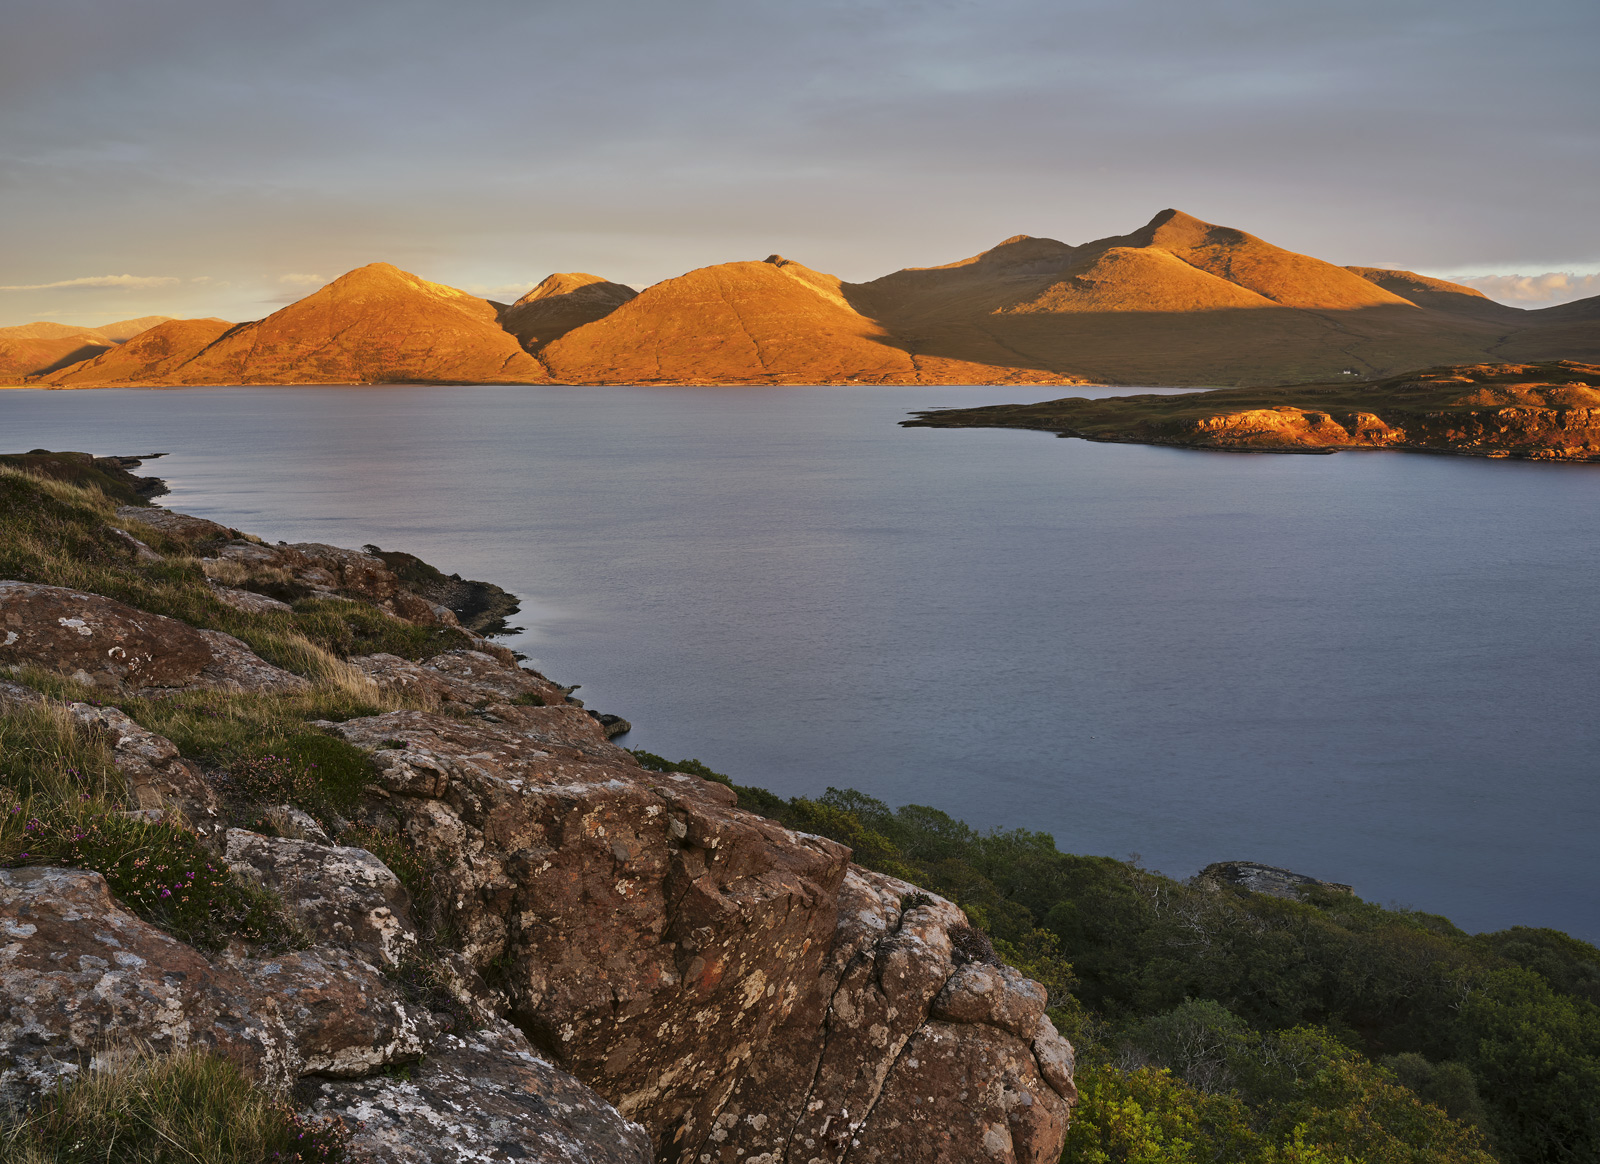 Sunset Loch Na Keal, Loch Na Keal, Mull, Scotland, sun, cloud, scythed, mountain tops, ginger, clear sky, red, rock, woo, photo